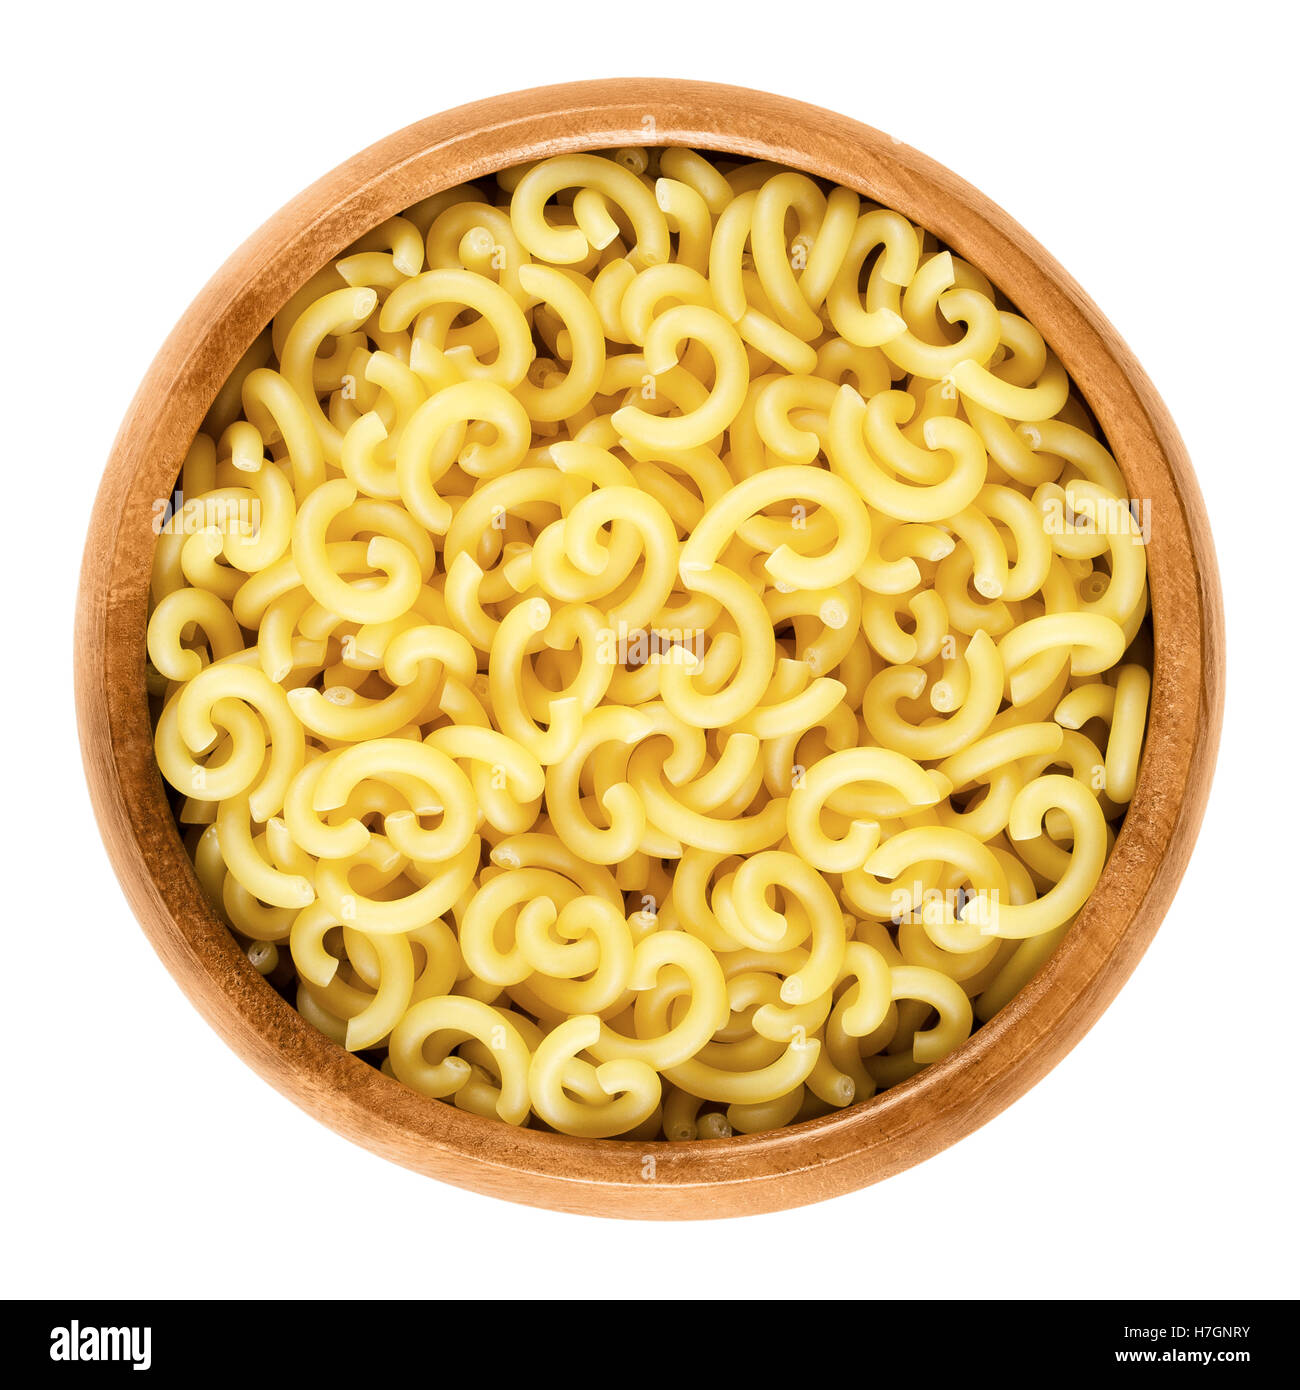 Gobbetti pasta in wooden bowl. Italian noddles, short-cut and G-shaped helical bent tubes. - Stock Image